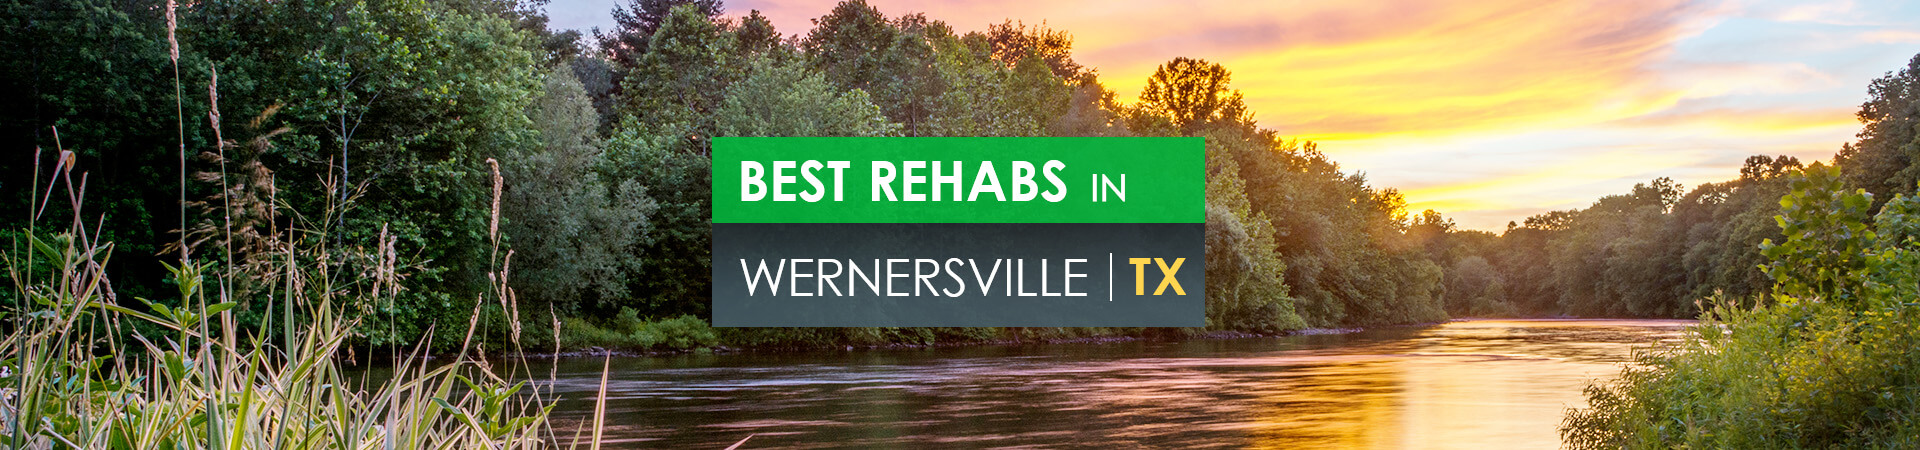 Best rehabs in Wernersville, PA